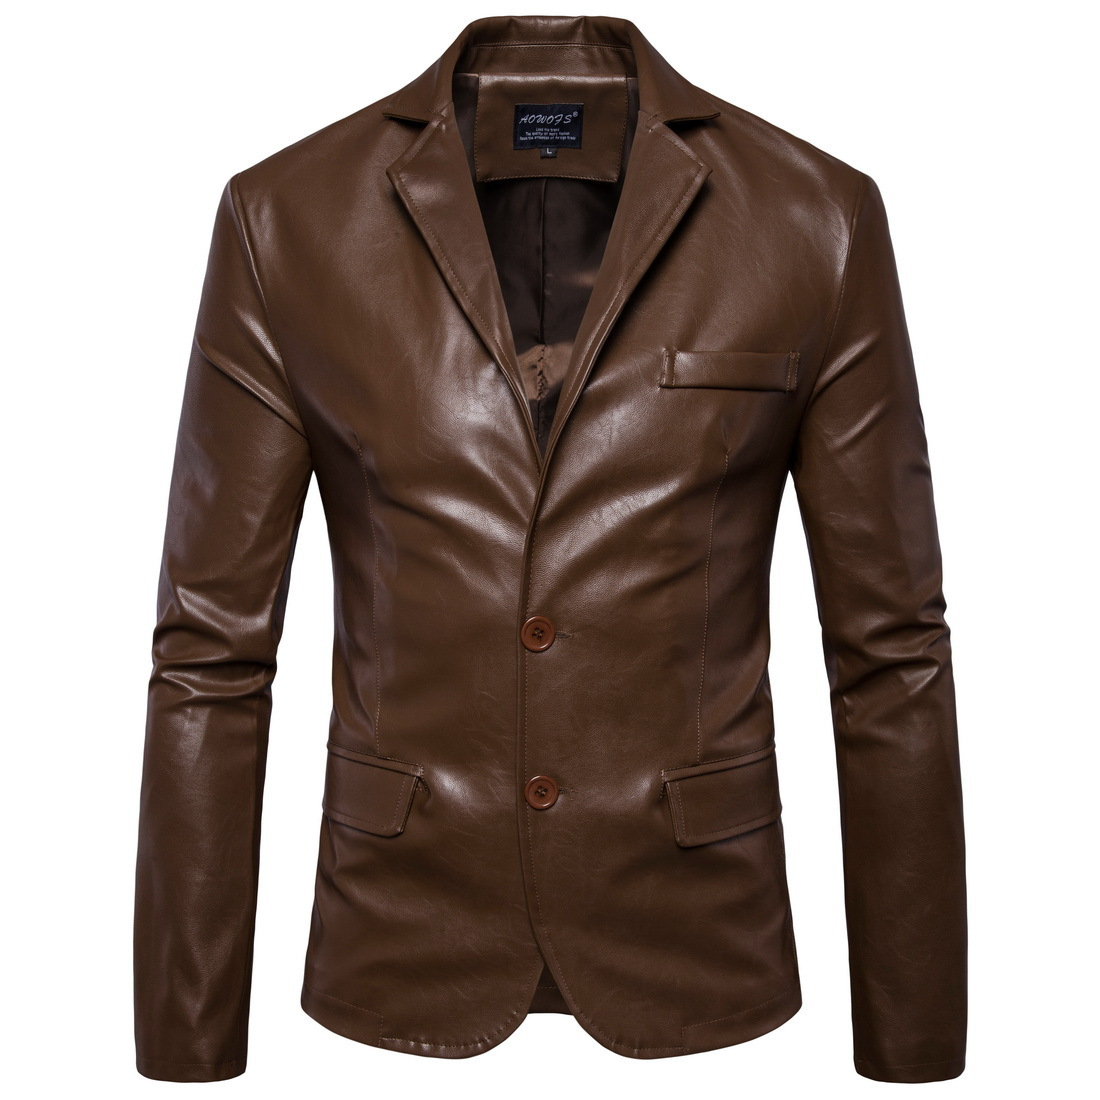 HO New 2019 Men's Leather Blazer Fashion Suits Brought Two Grain Of Buckle Western-style PU Leather